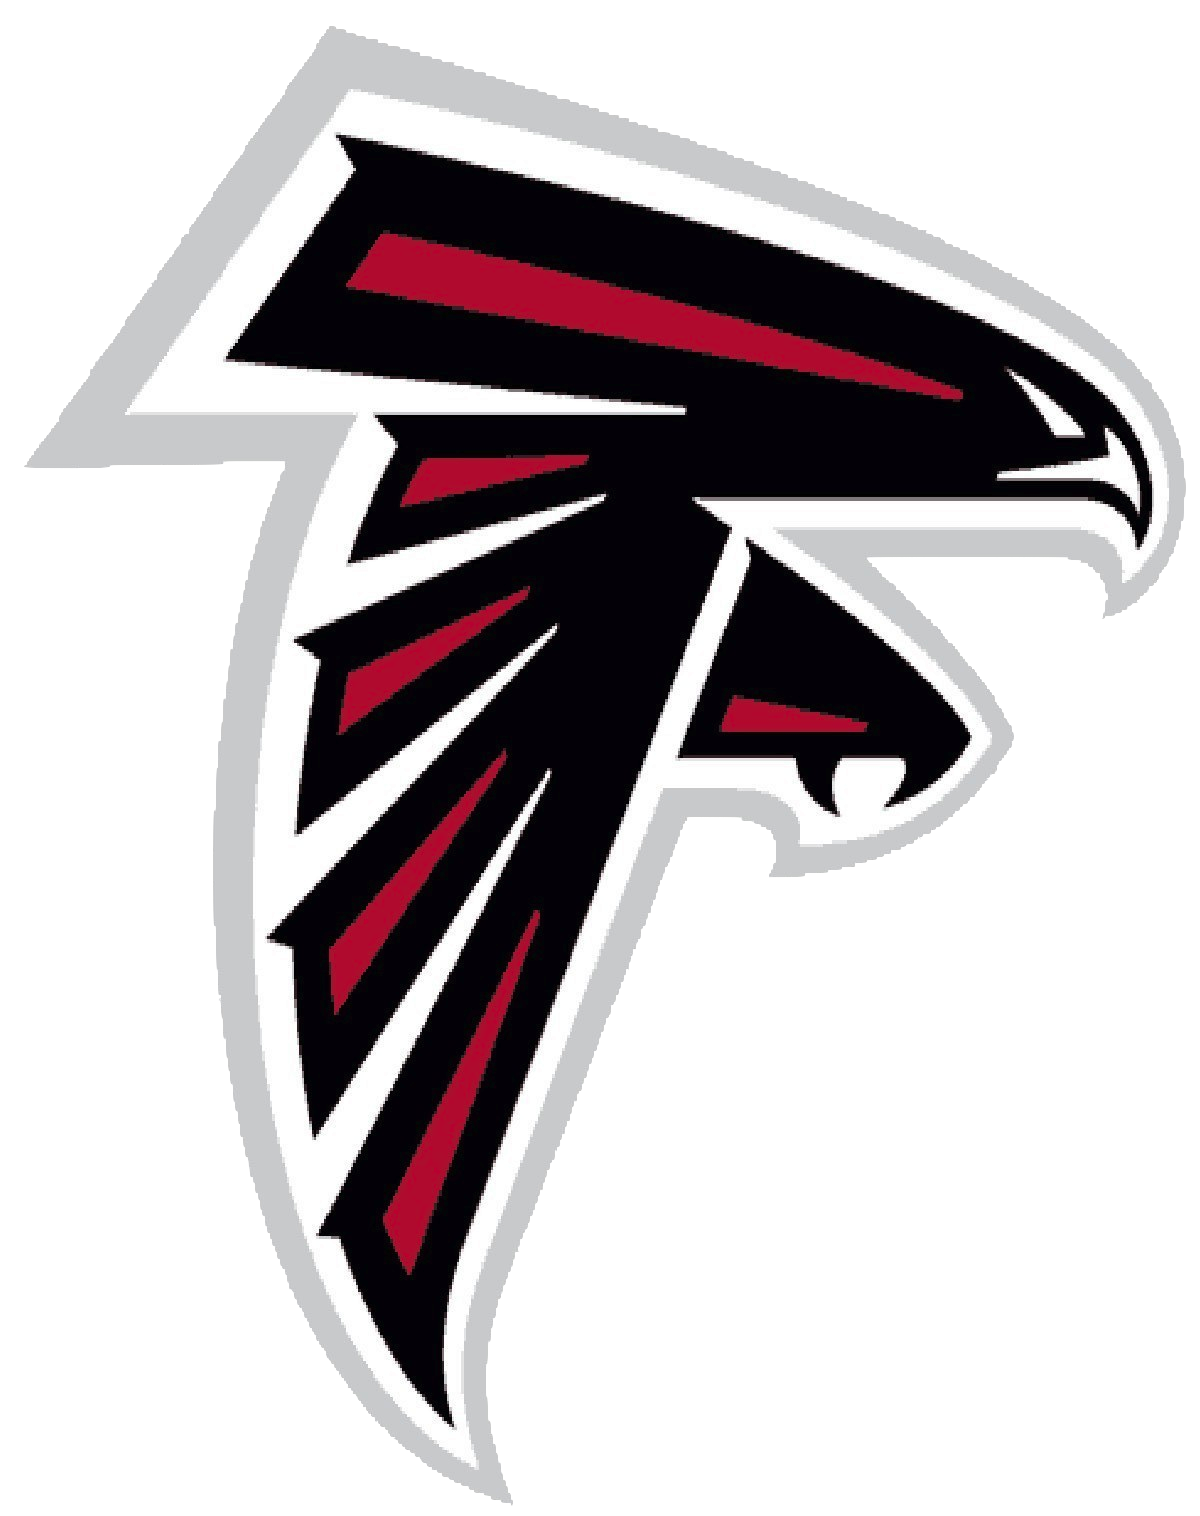 falcons logo clip art alternative clipart design u2022 rh extravector today atlanta falcons vector logo download